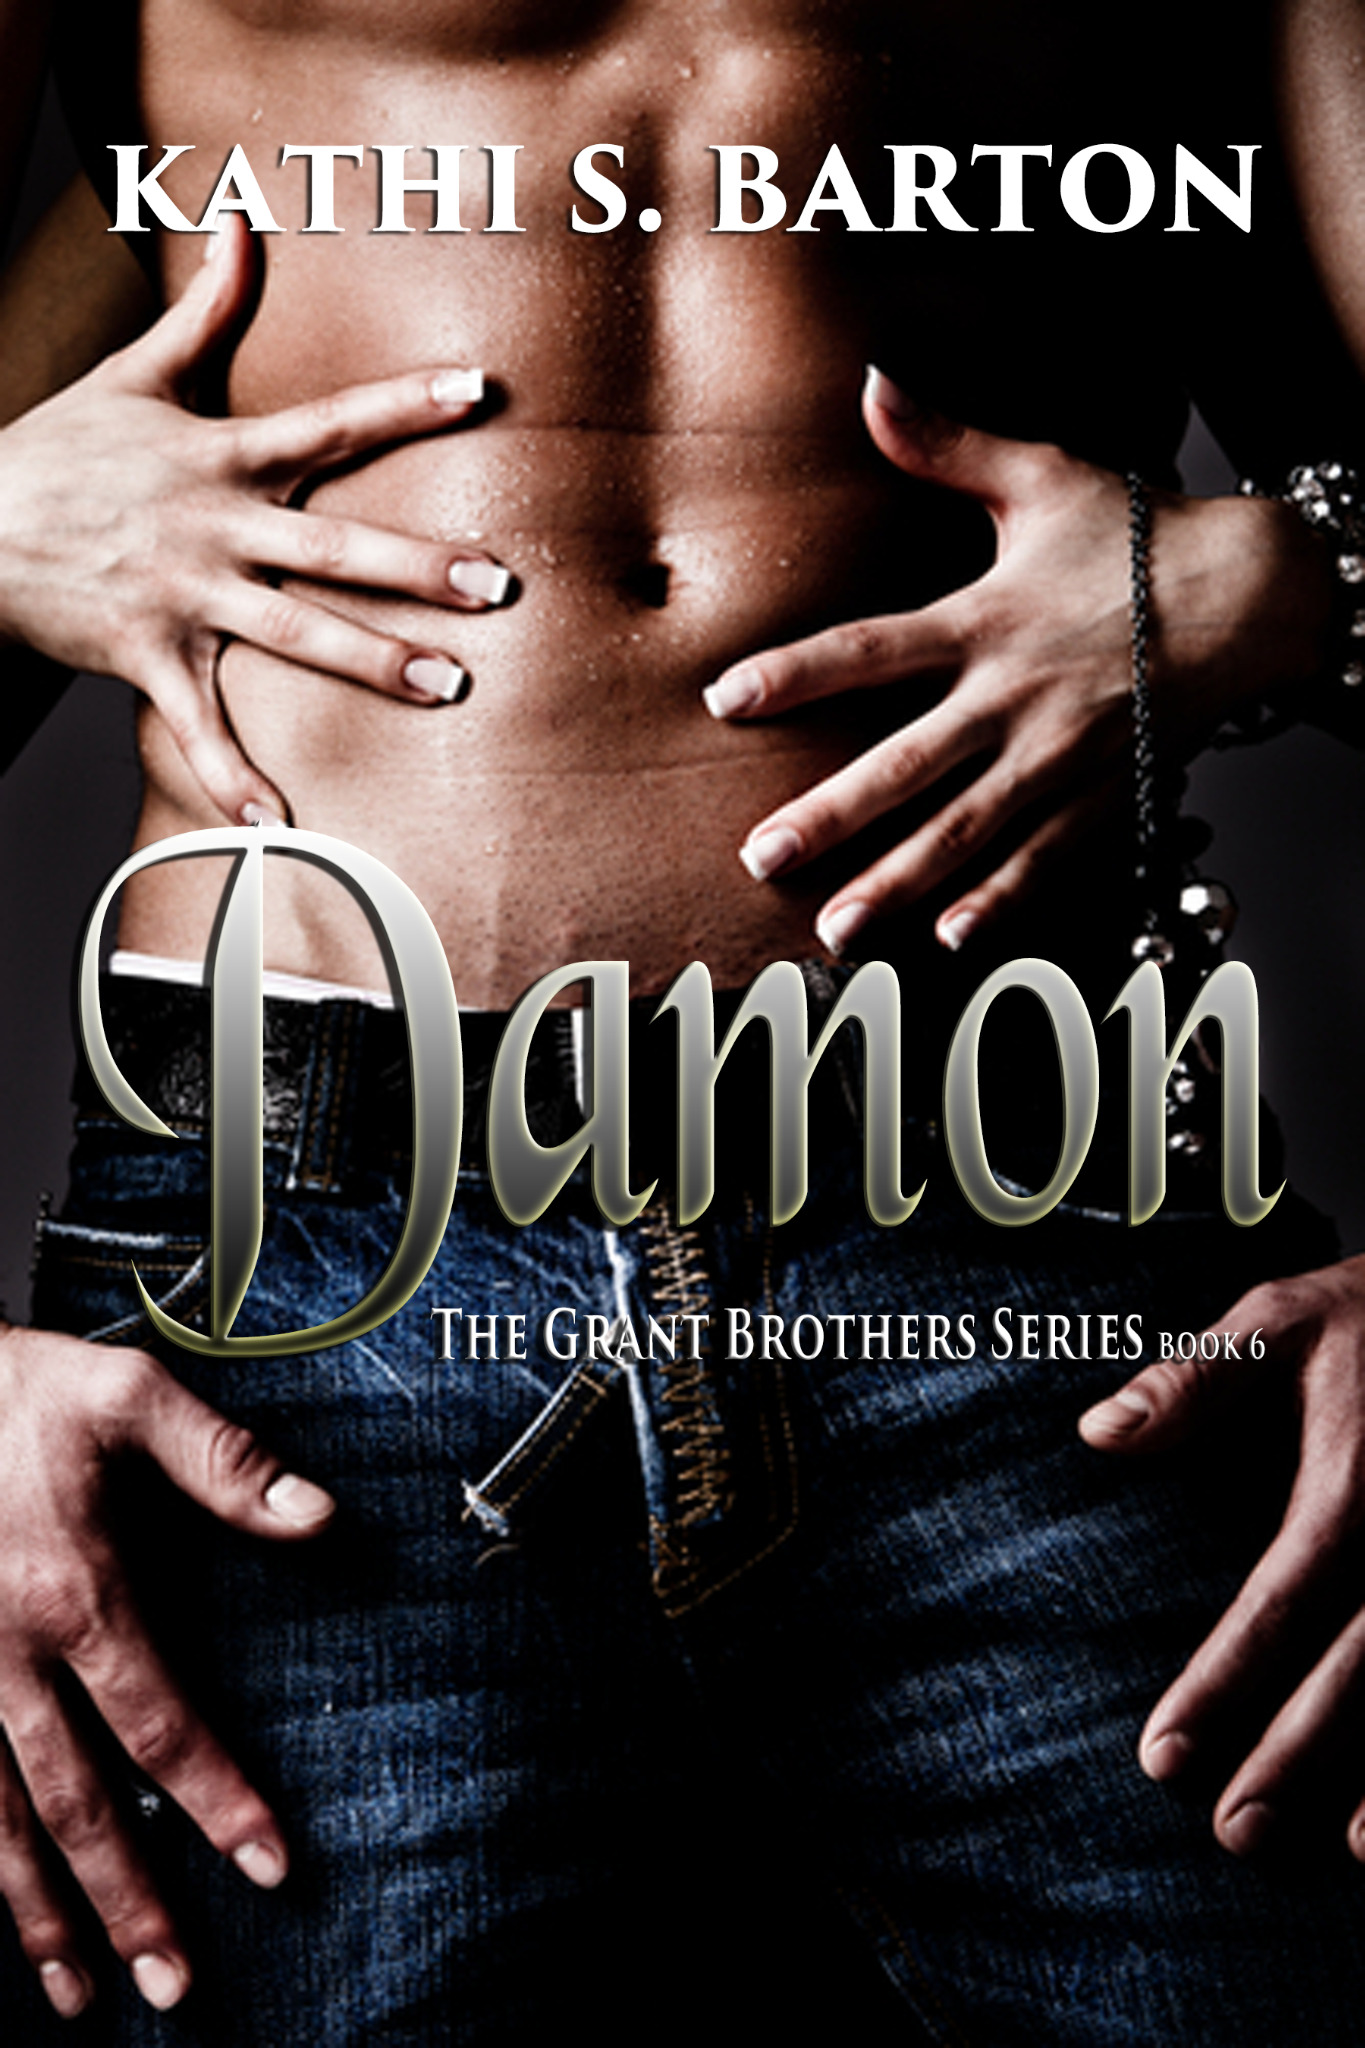 Damon - The Grant Brothers Series Book 6